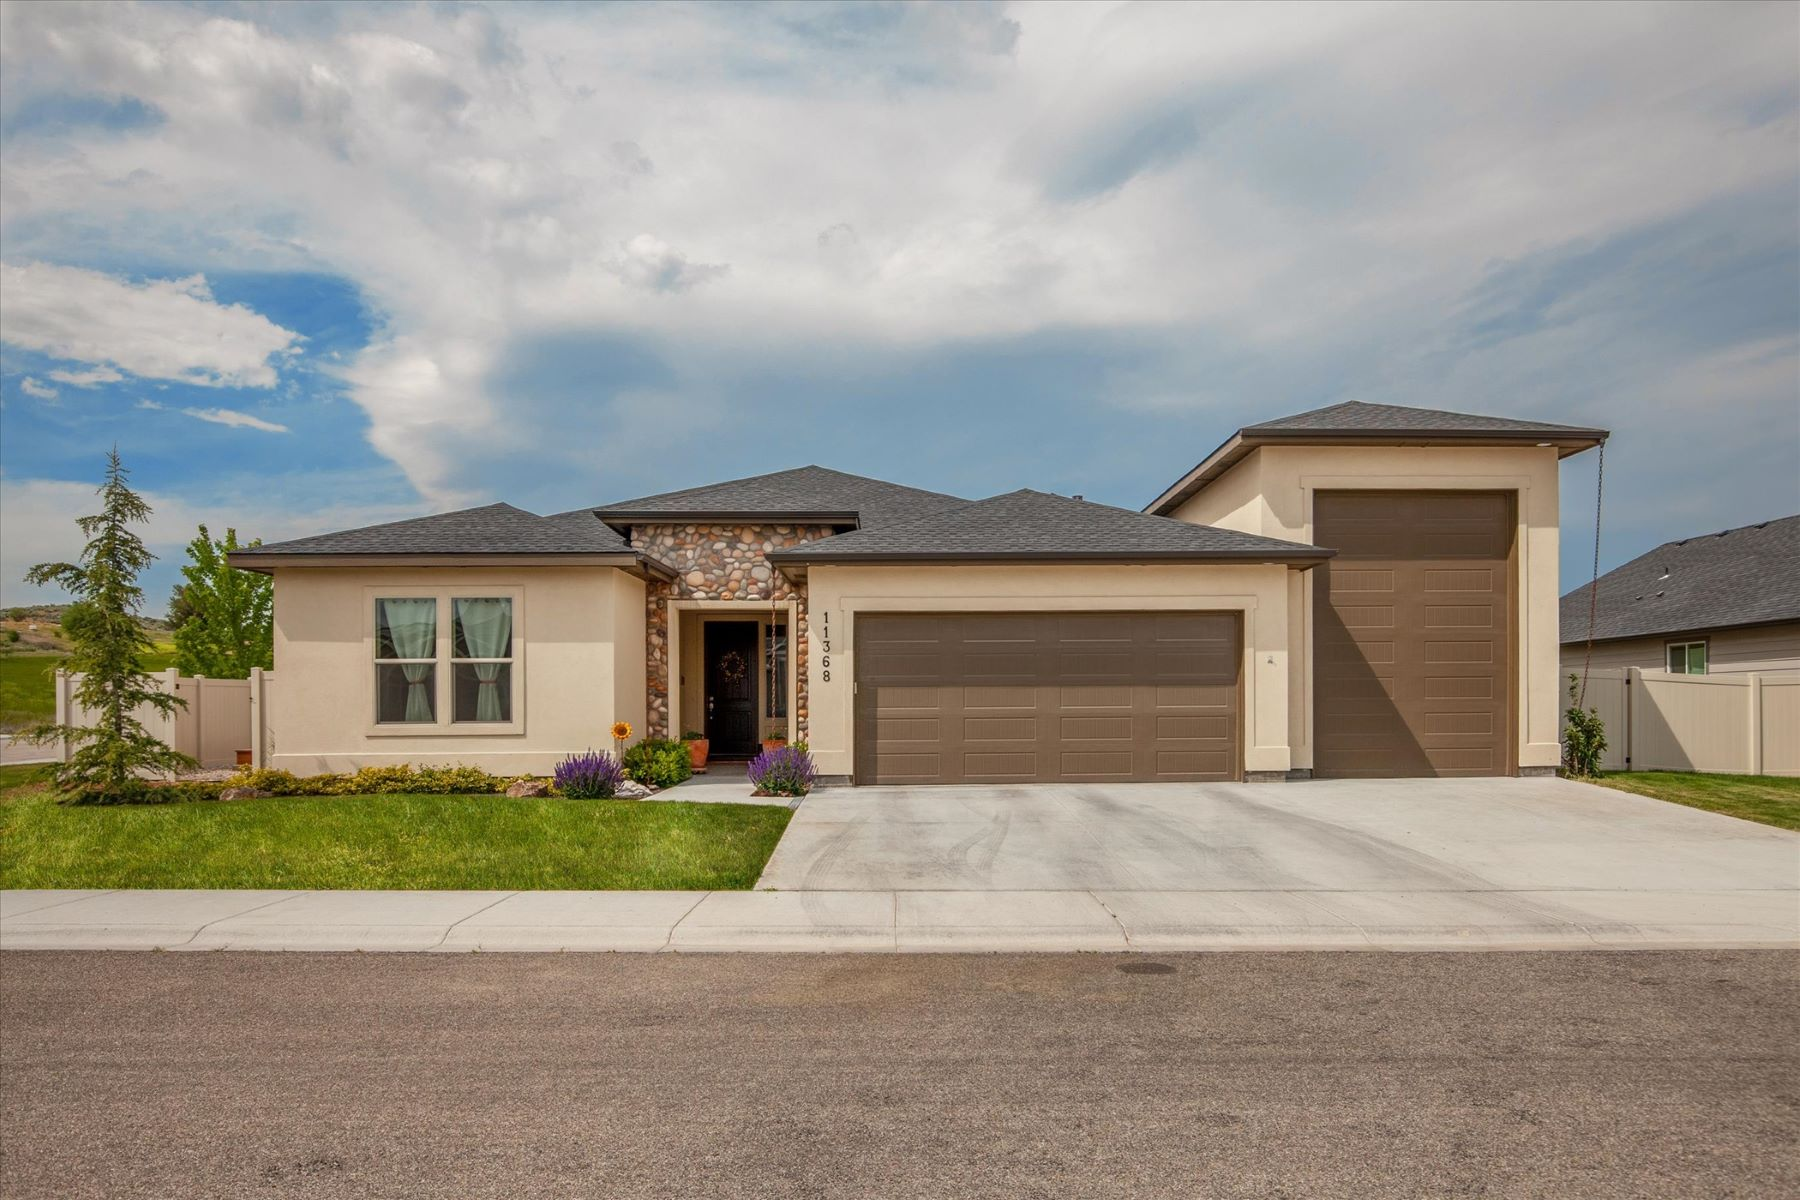 Single Family Home for Active at 11368 Wild Aster St, Star 11368 Wild Aster St Star, Idaho 83669 United States